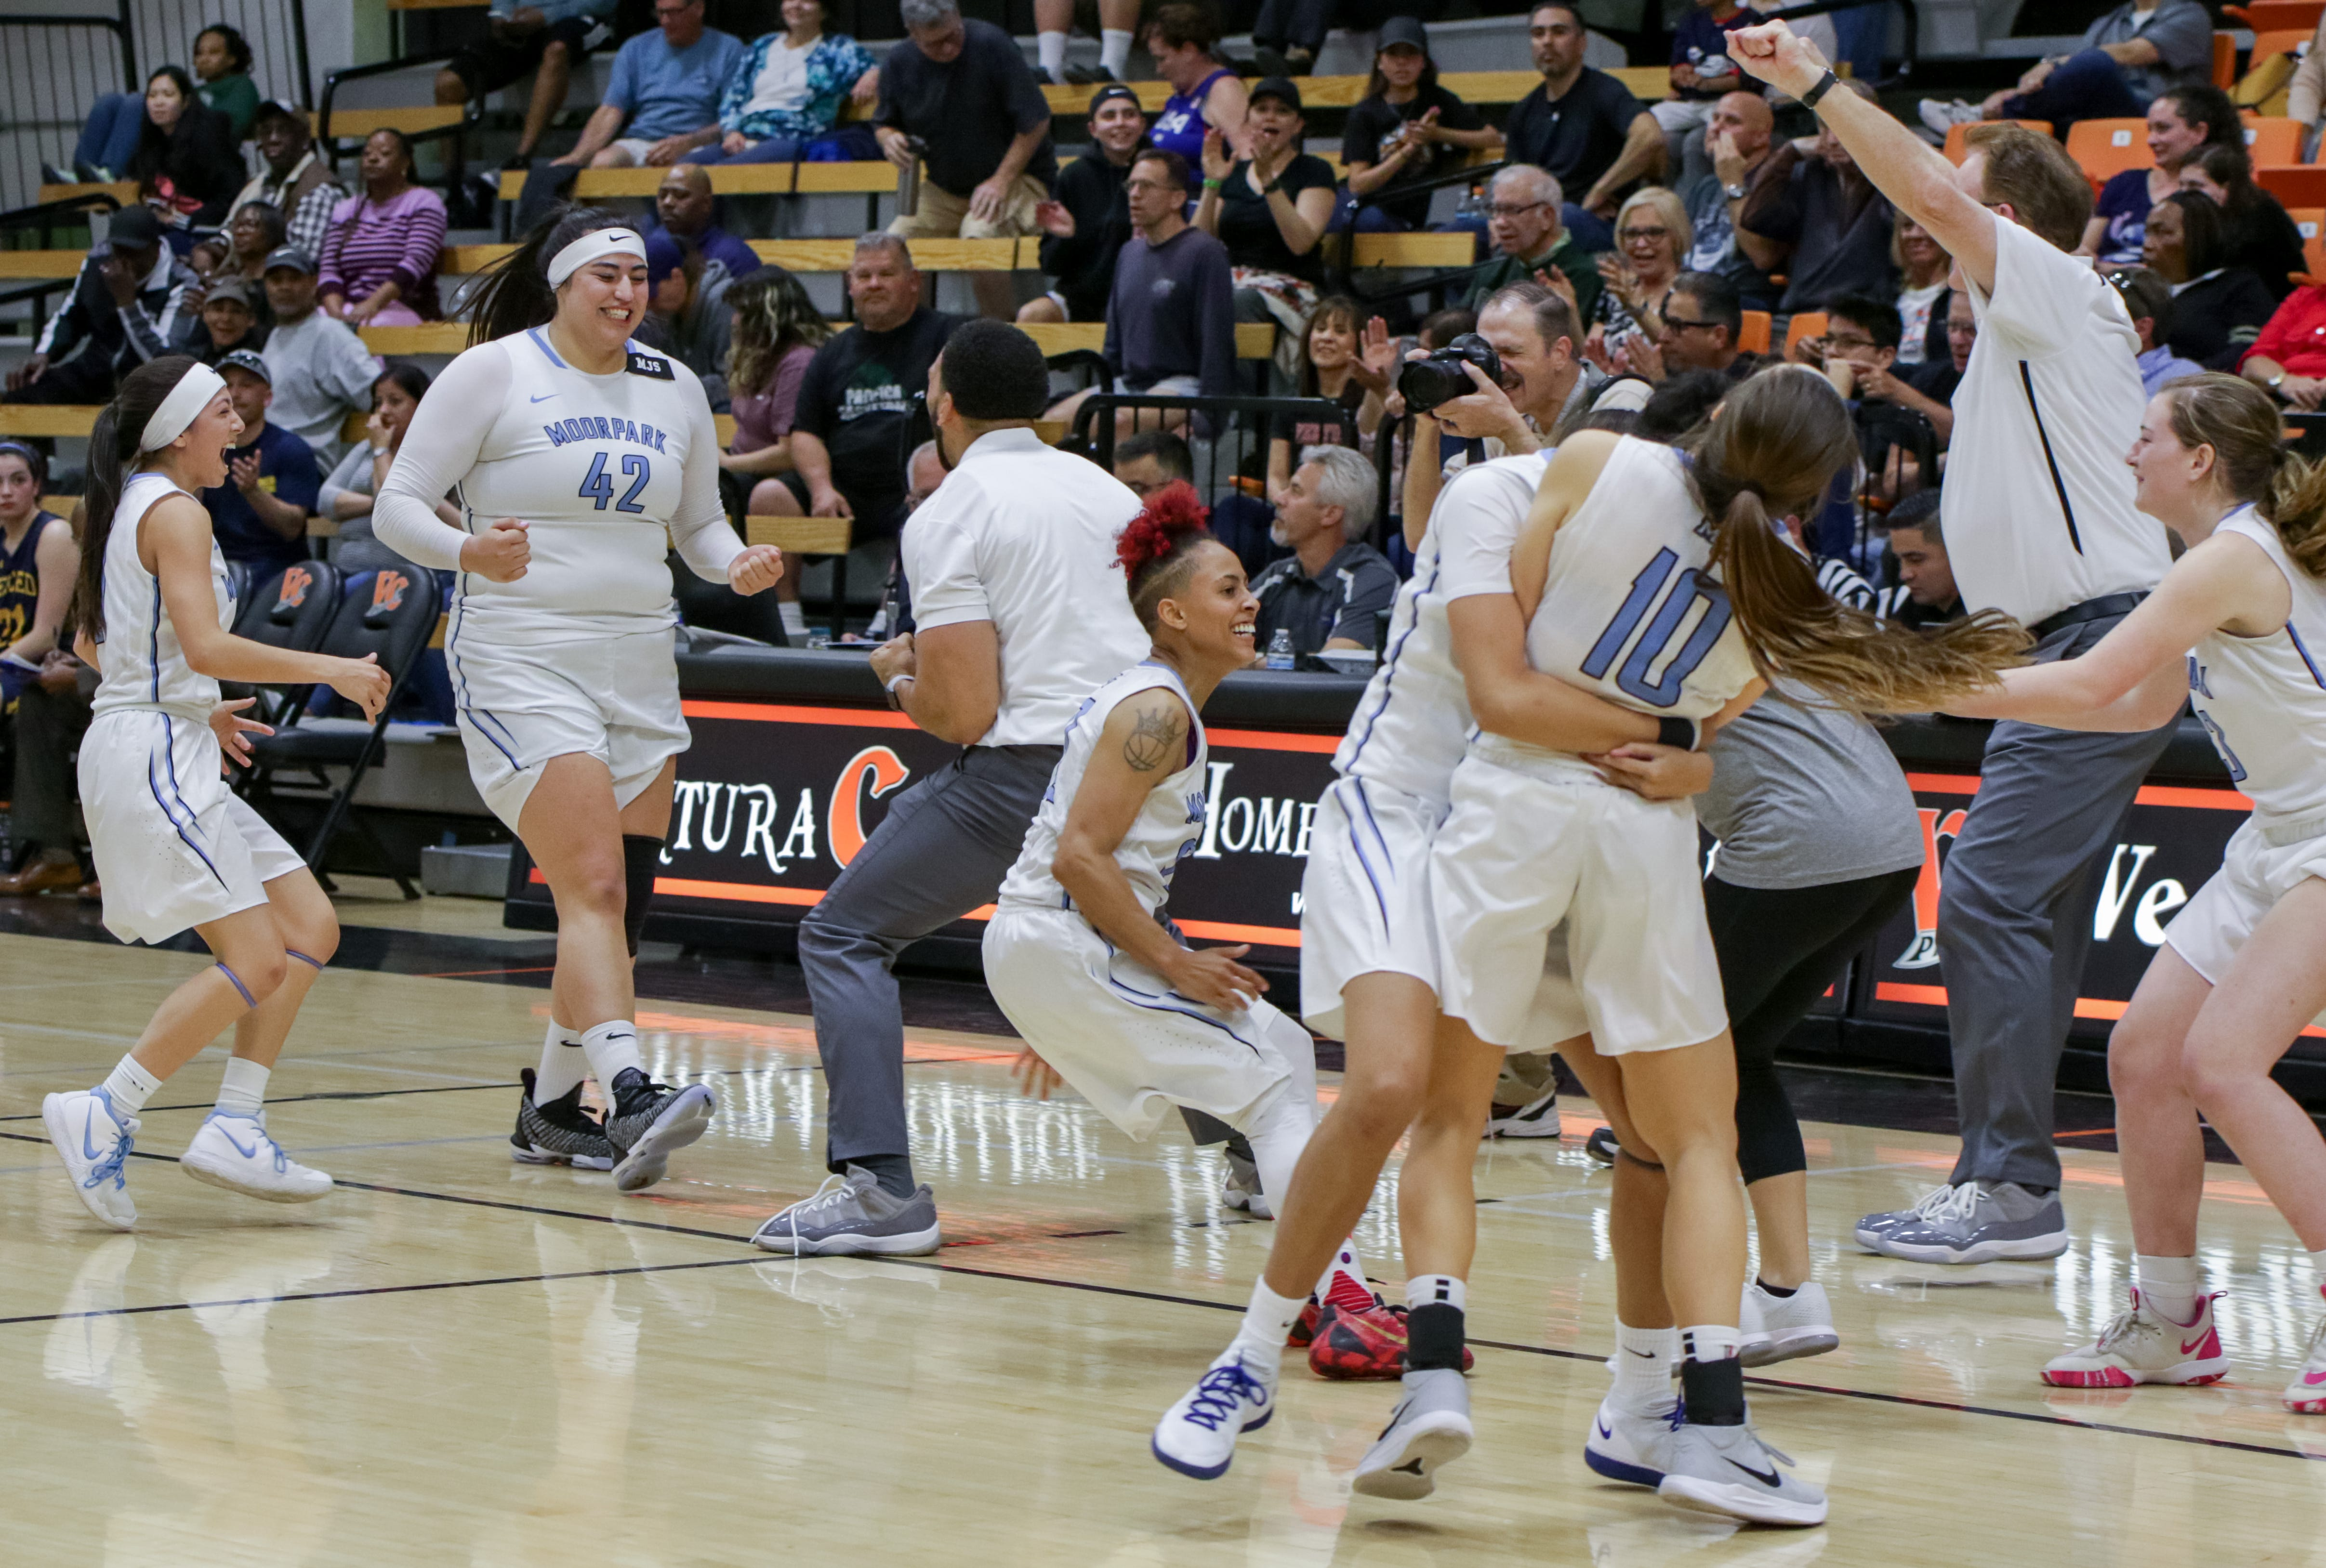 The Moorpark College women's basketball team celebrates advancing to the first CCCAA state final in program history after a 73-68 win over Merced College on Saturday night at Ventura College.